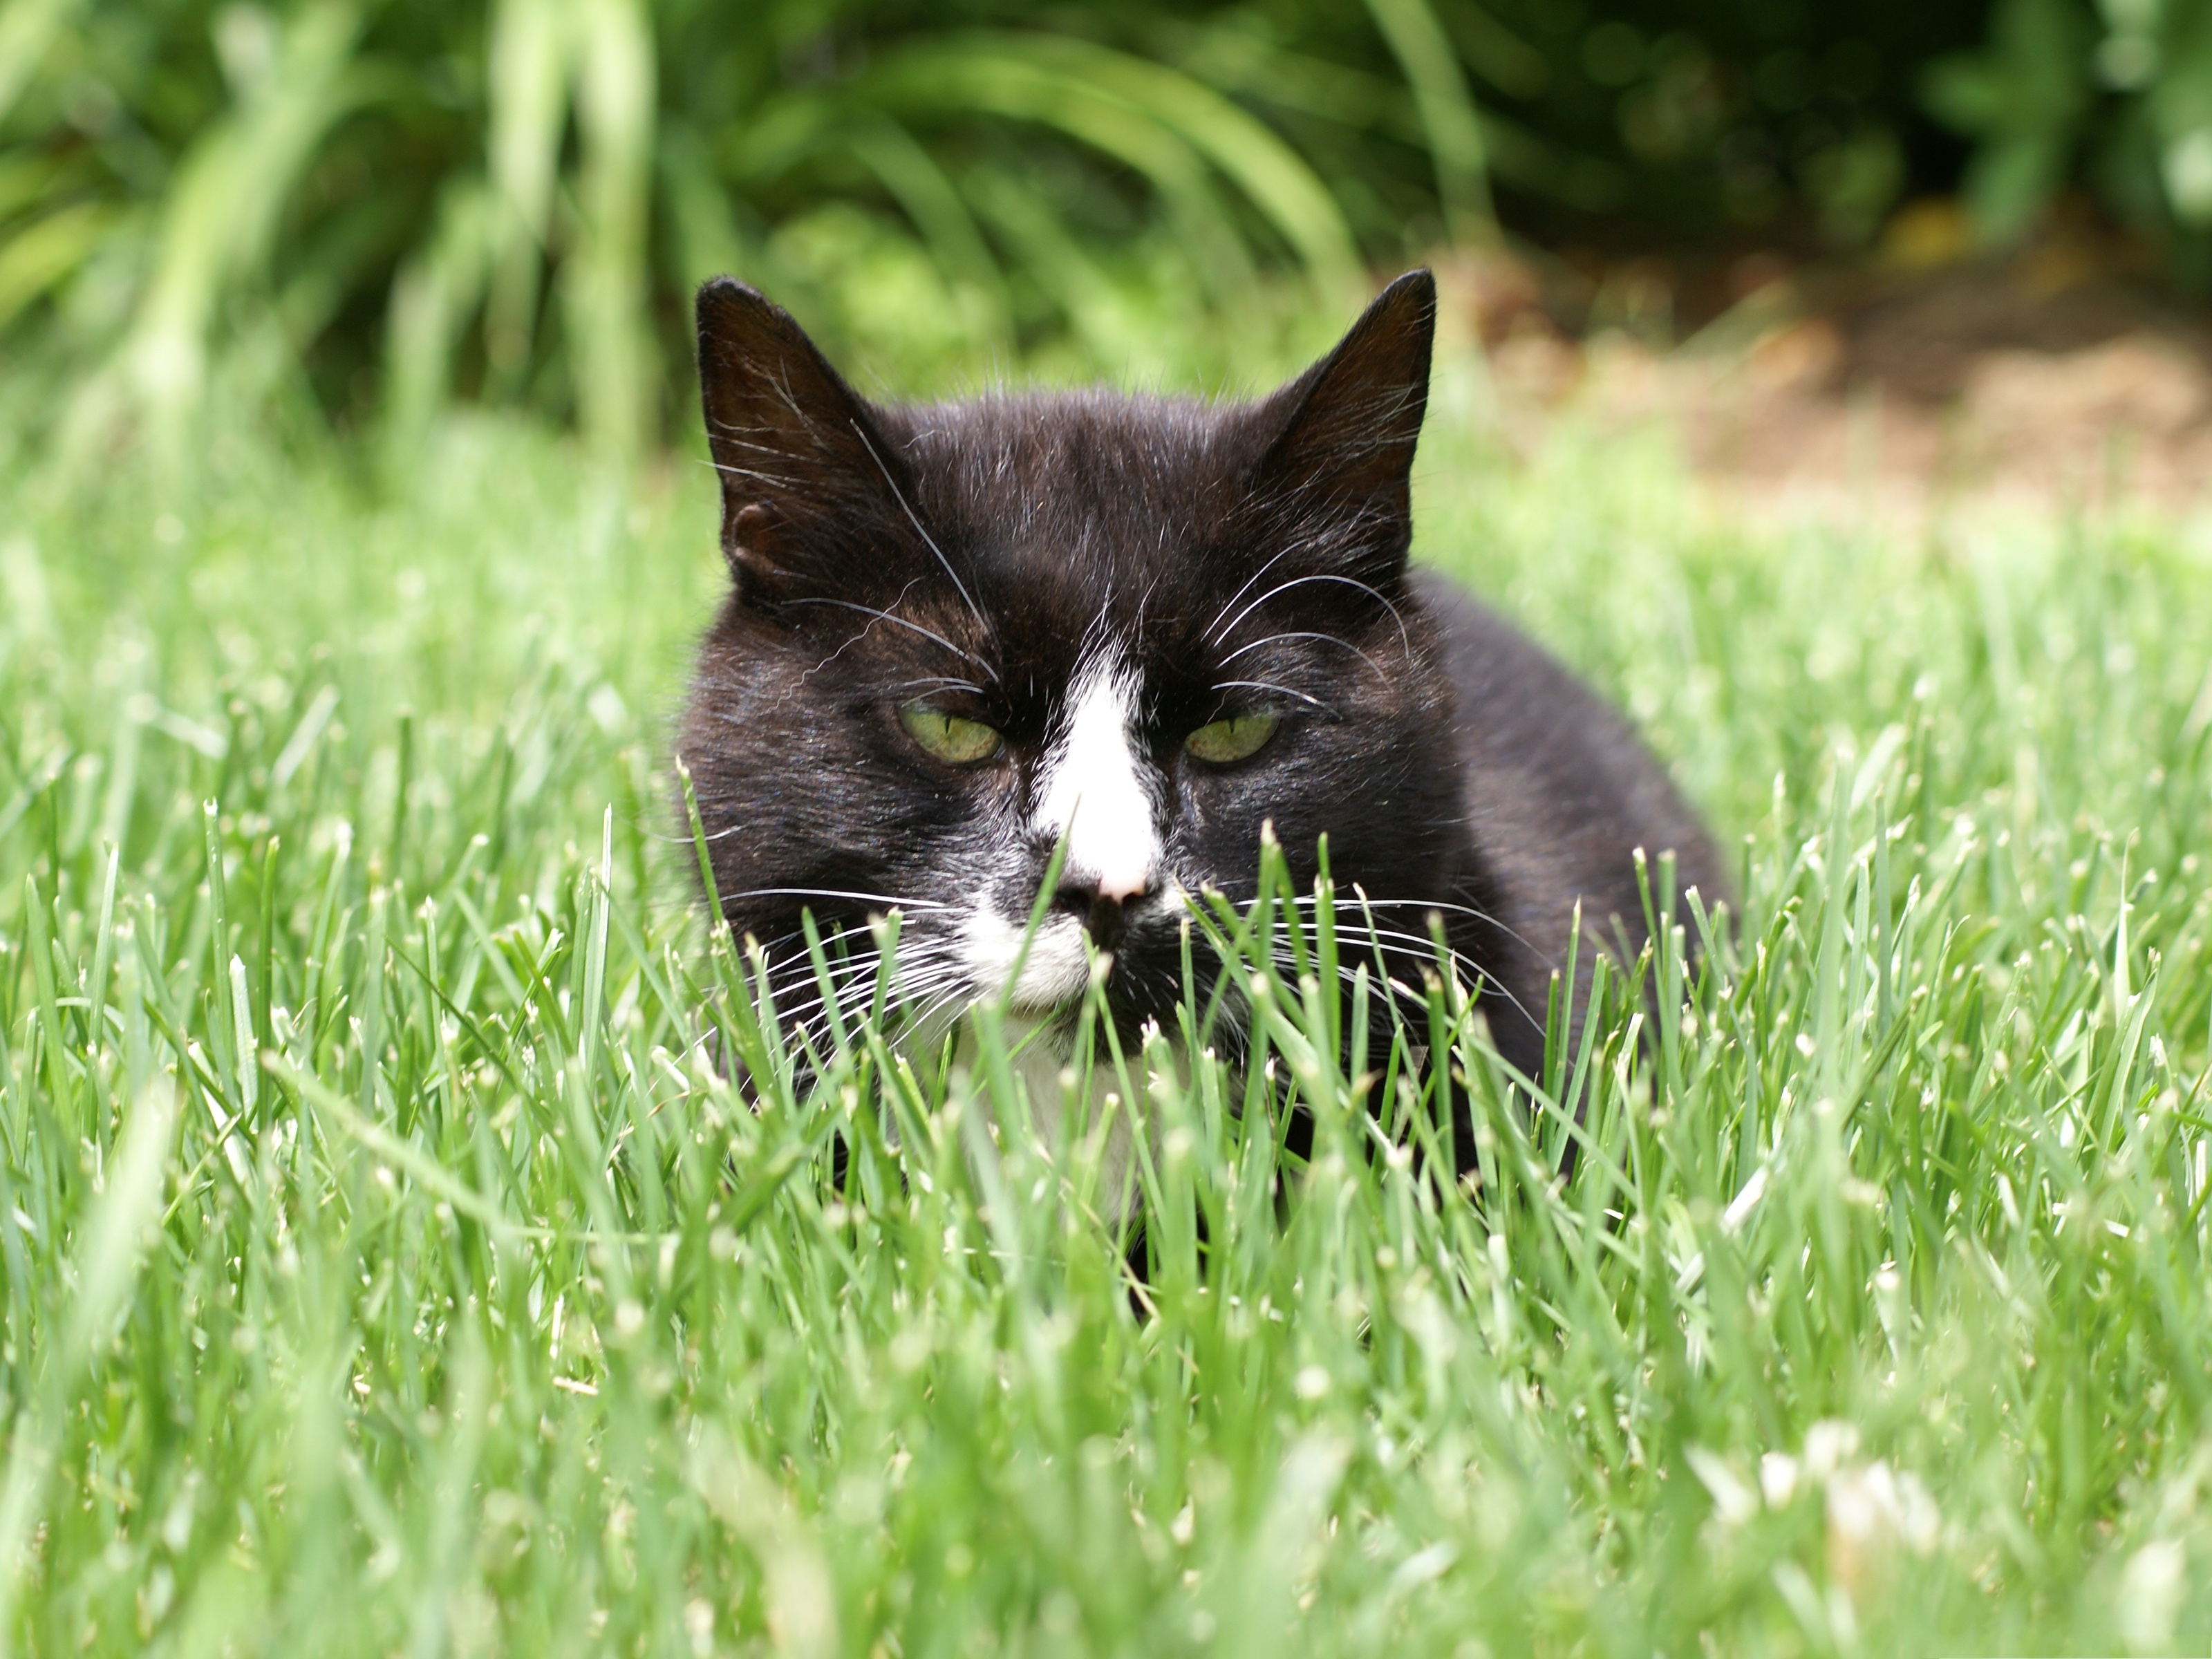 click to free download the wallpaper--Cute Cat Picture, Kitten in Green Grass, Ready to Attack 3200X2400 free wallpaper download